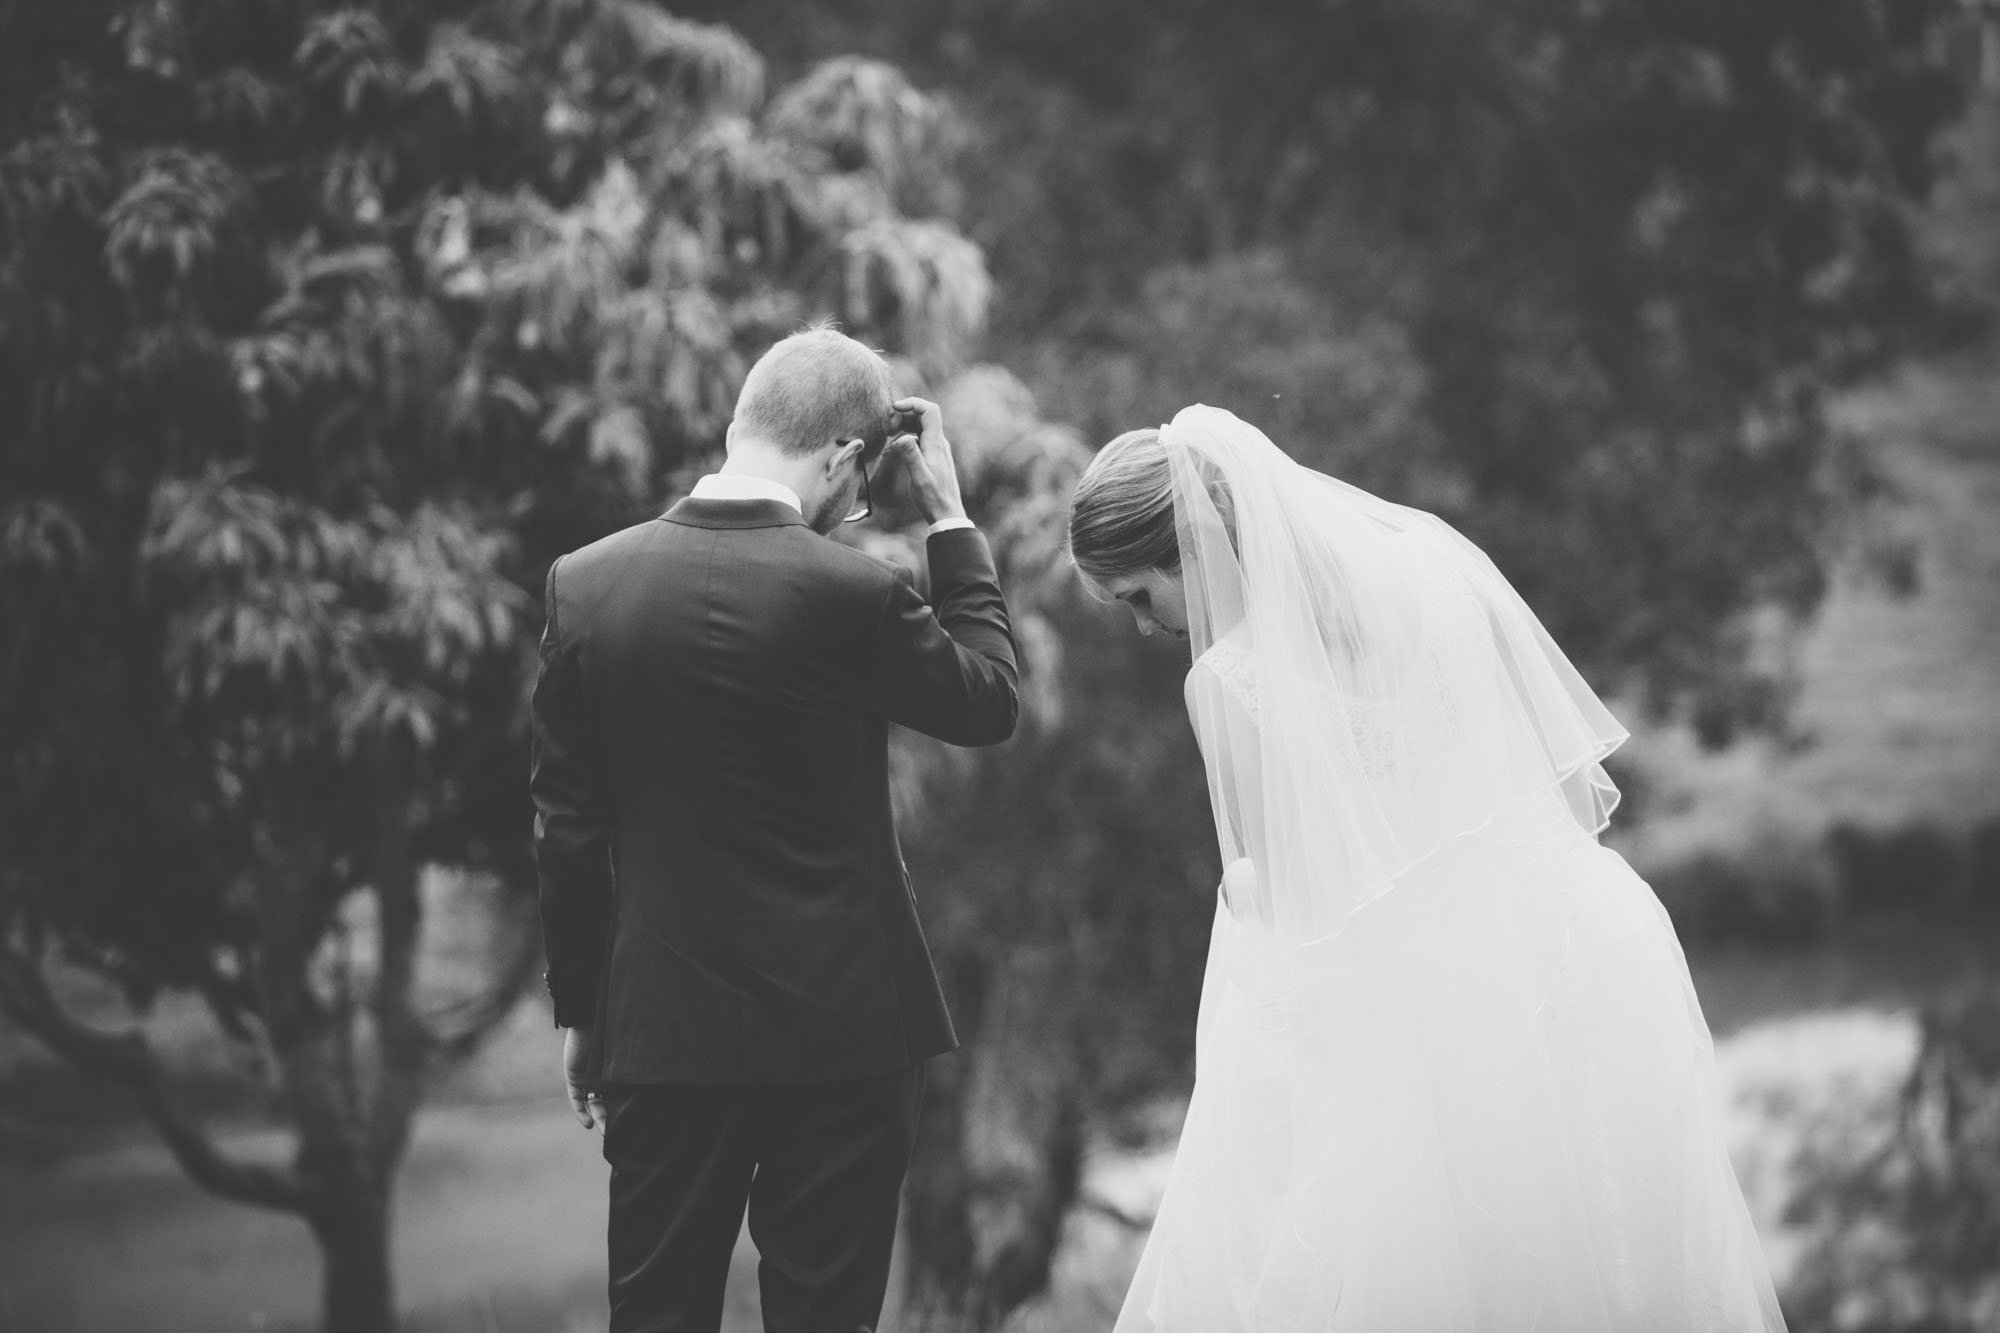 Black and White Wedding Photography Brisbane Anna Osetroff